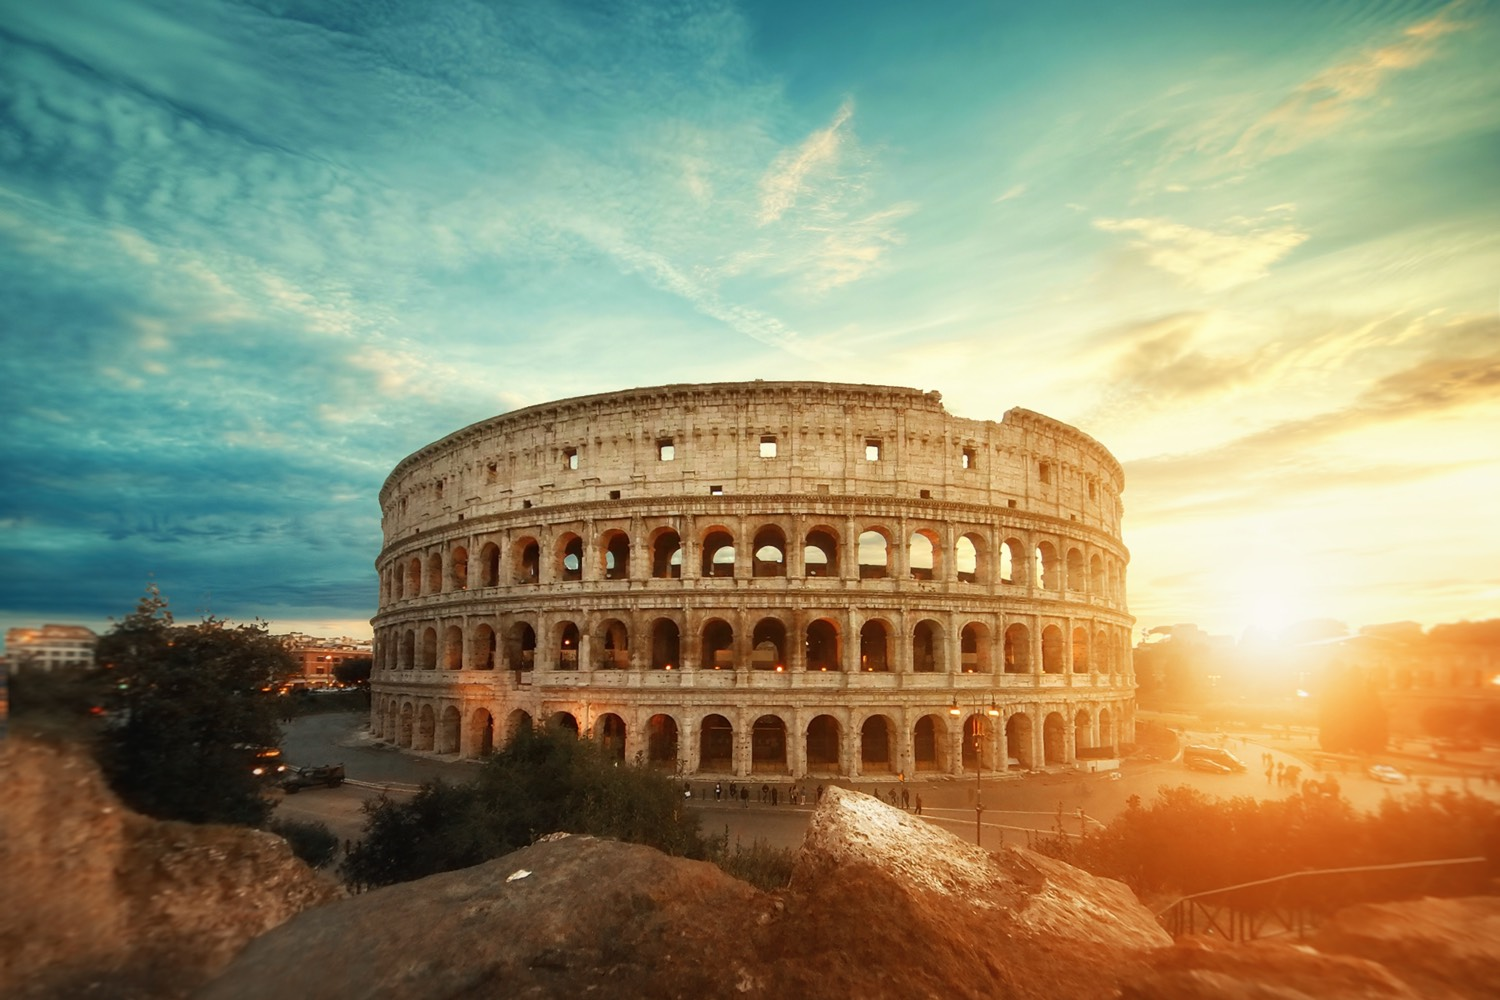 Colosseum in Rom. Foto: Willian West/Unsplash